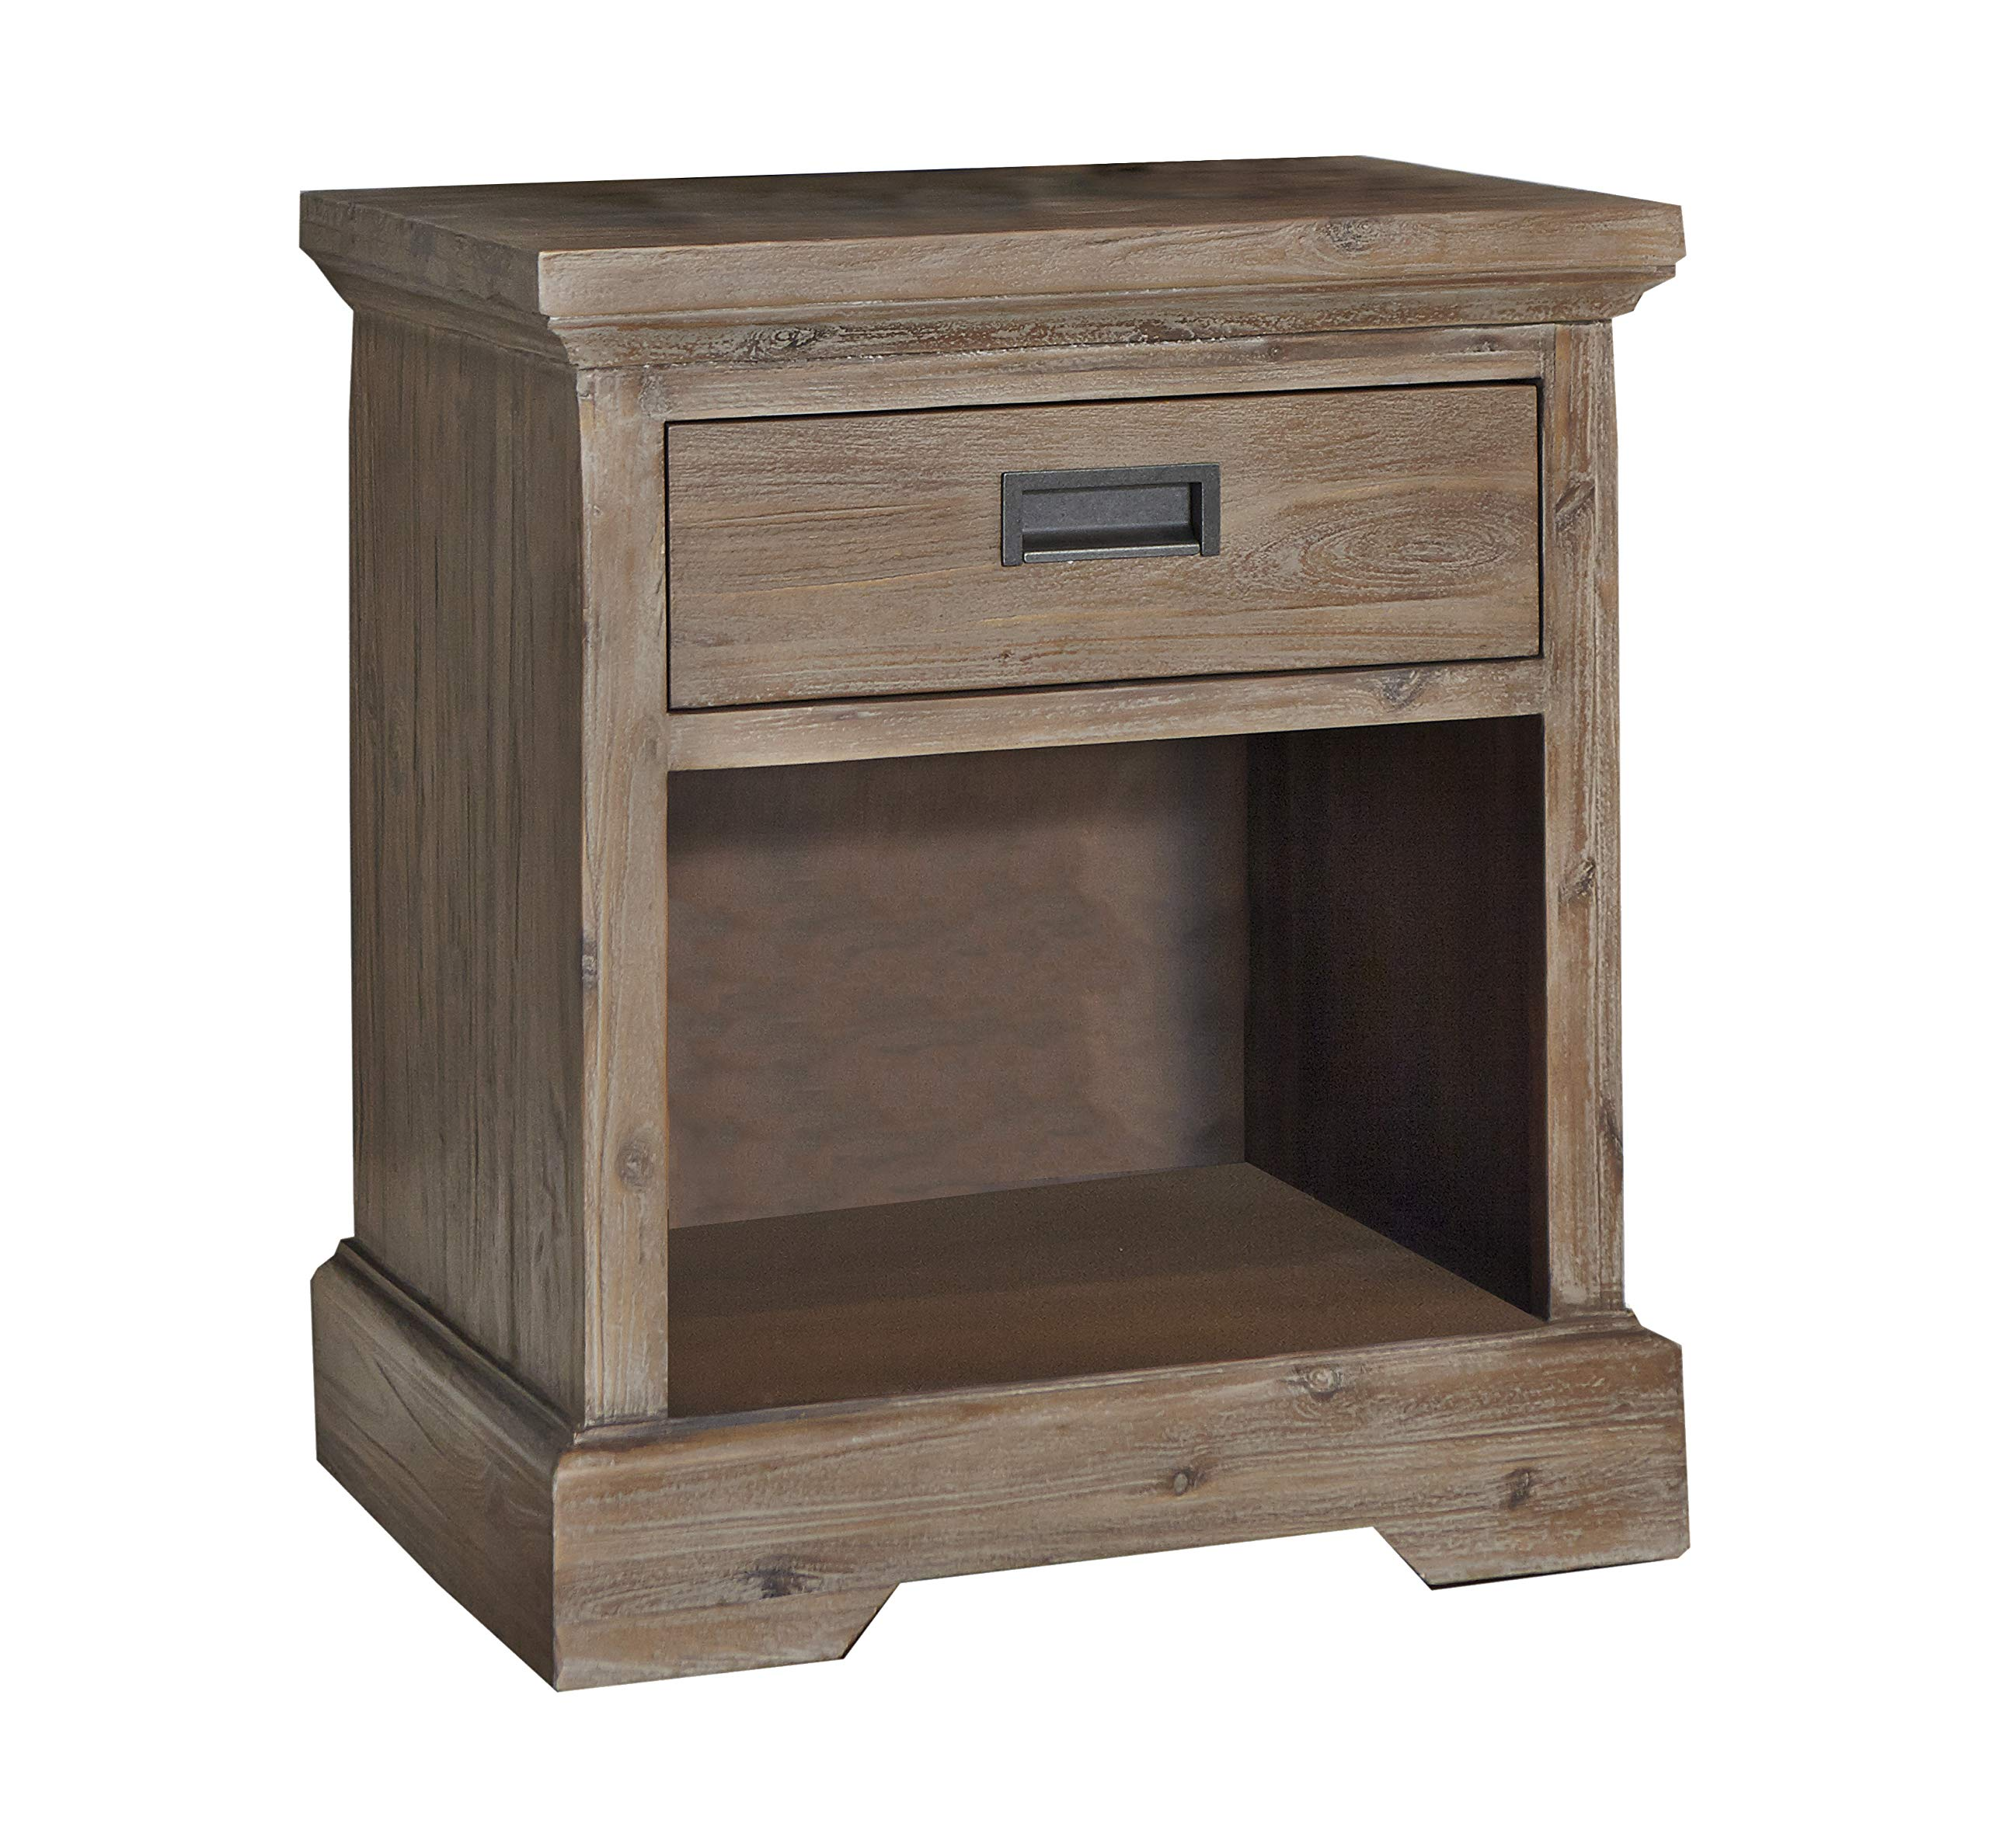 Hillsdale Furniture 7104-771 Oxford NIghtstand, Cocoa by Hillsdale Furniture